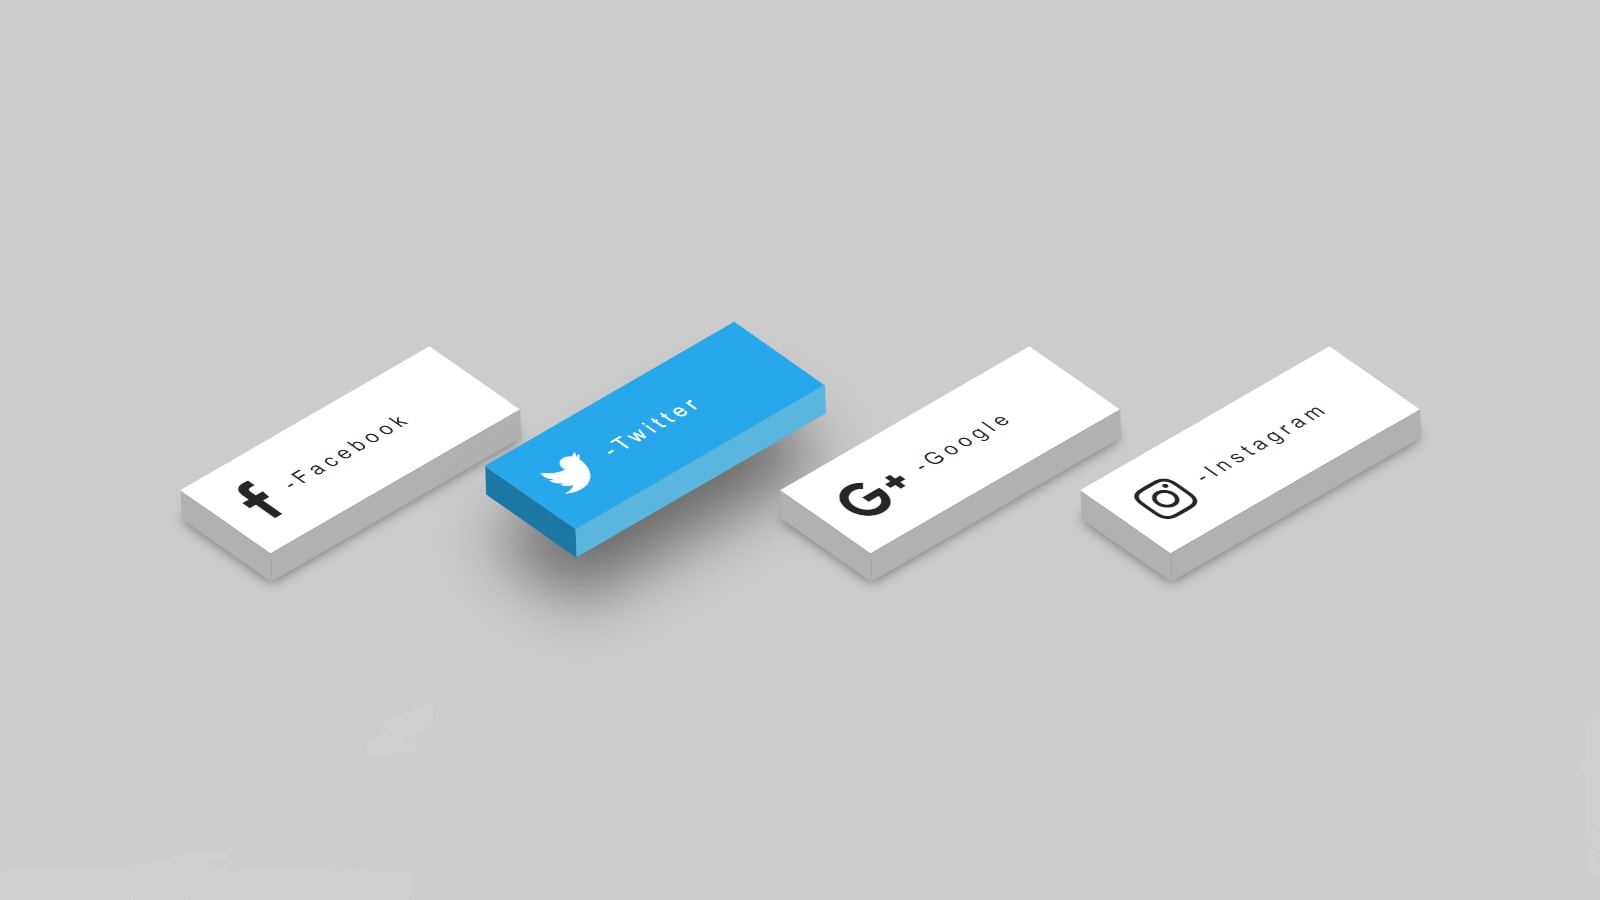 3D Social Media Buttons Using Simple HTML and CSS Code